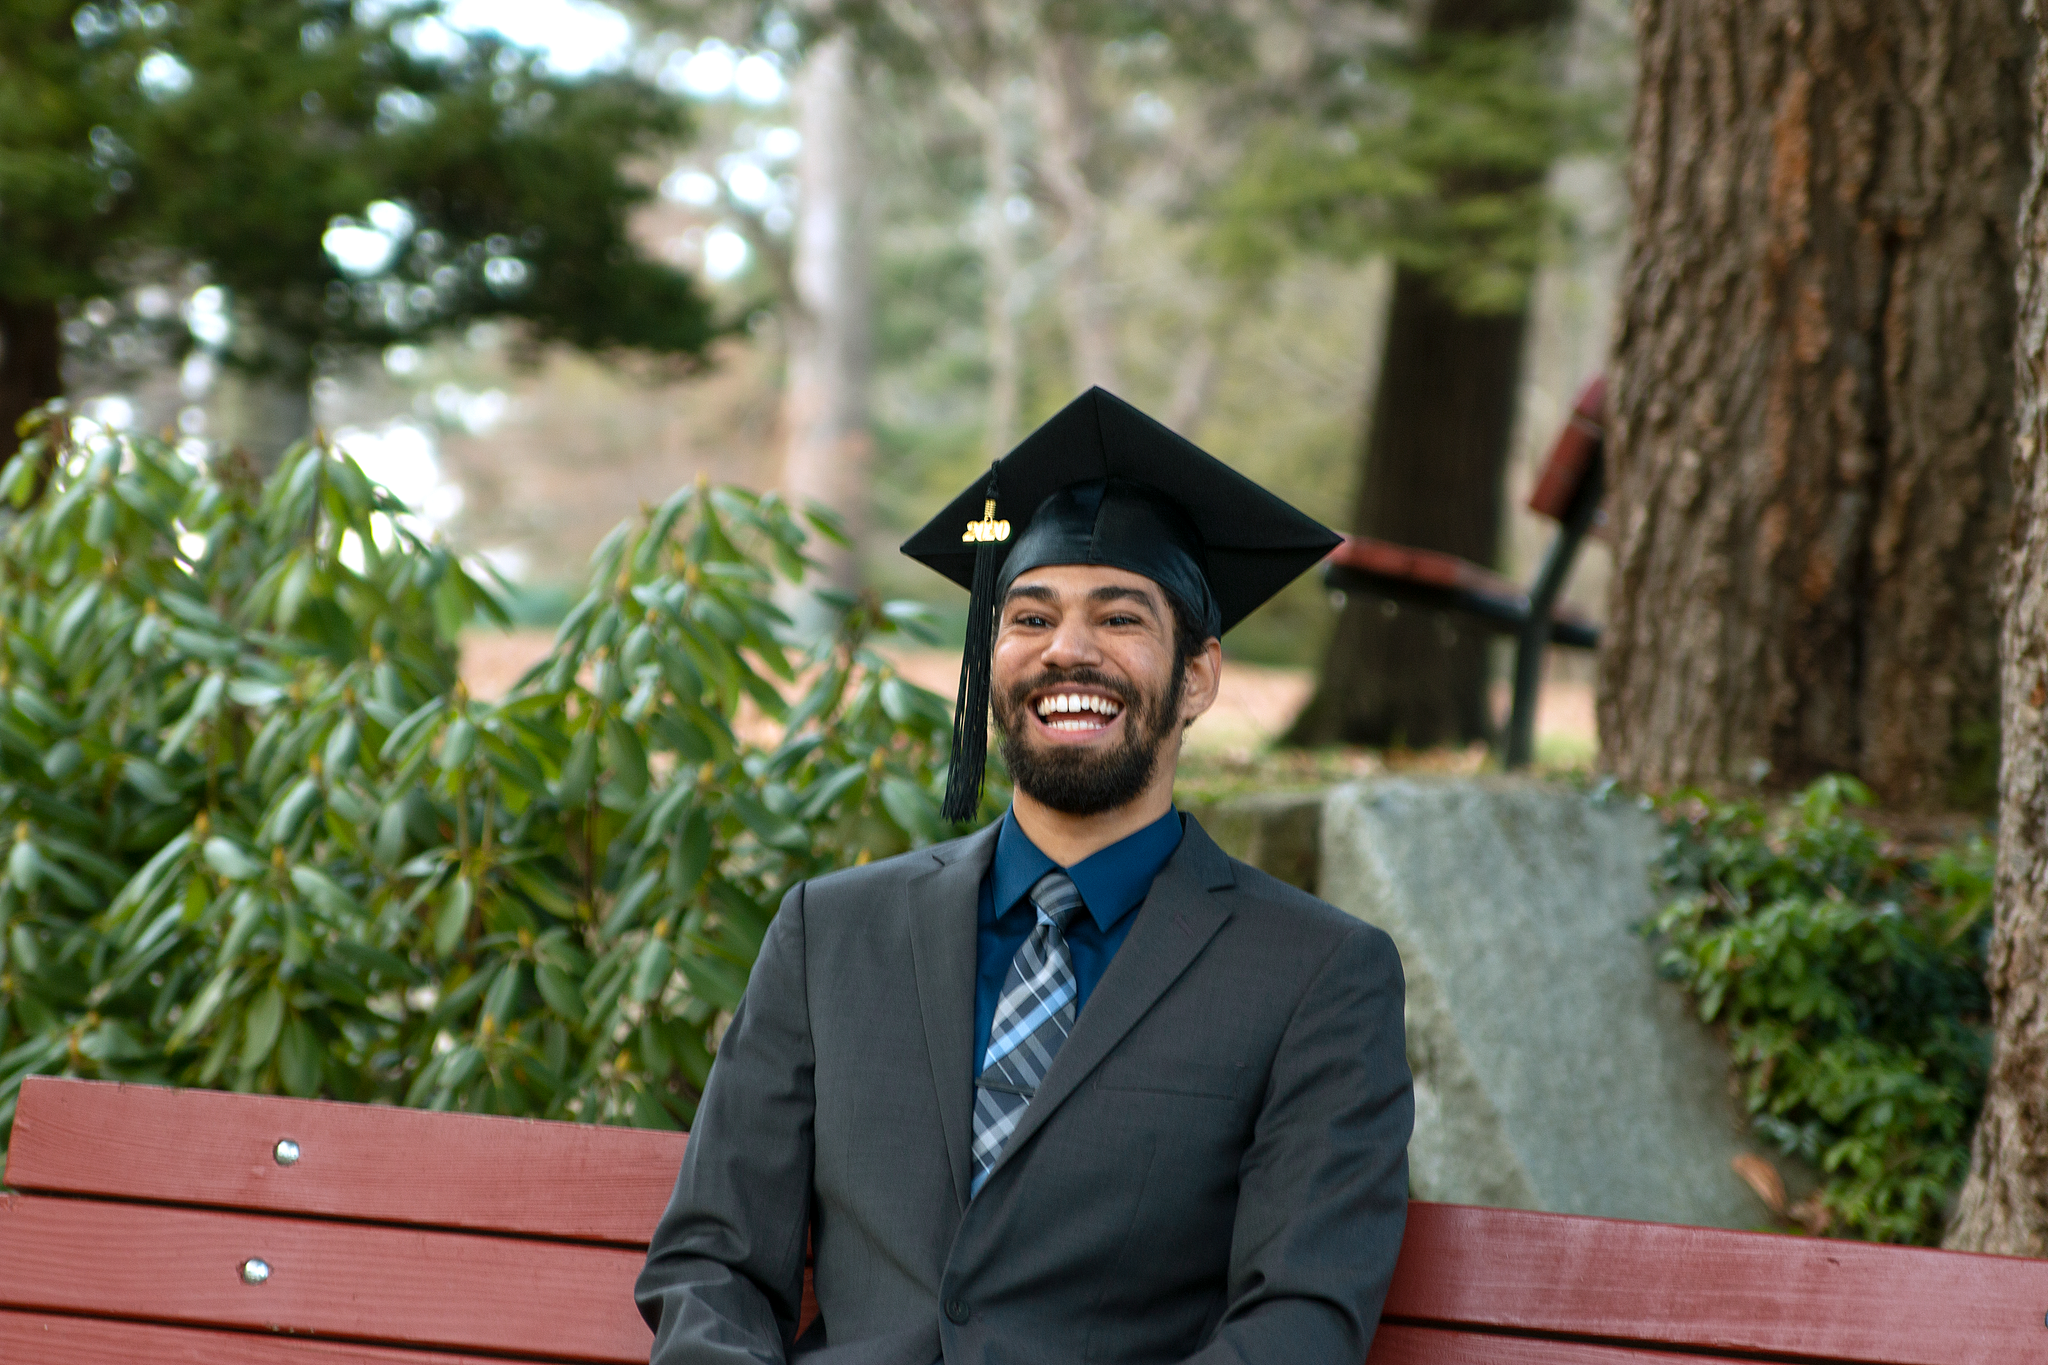 Student smiling while sitting outdoors on bench with jacket, tie and graduation cap.